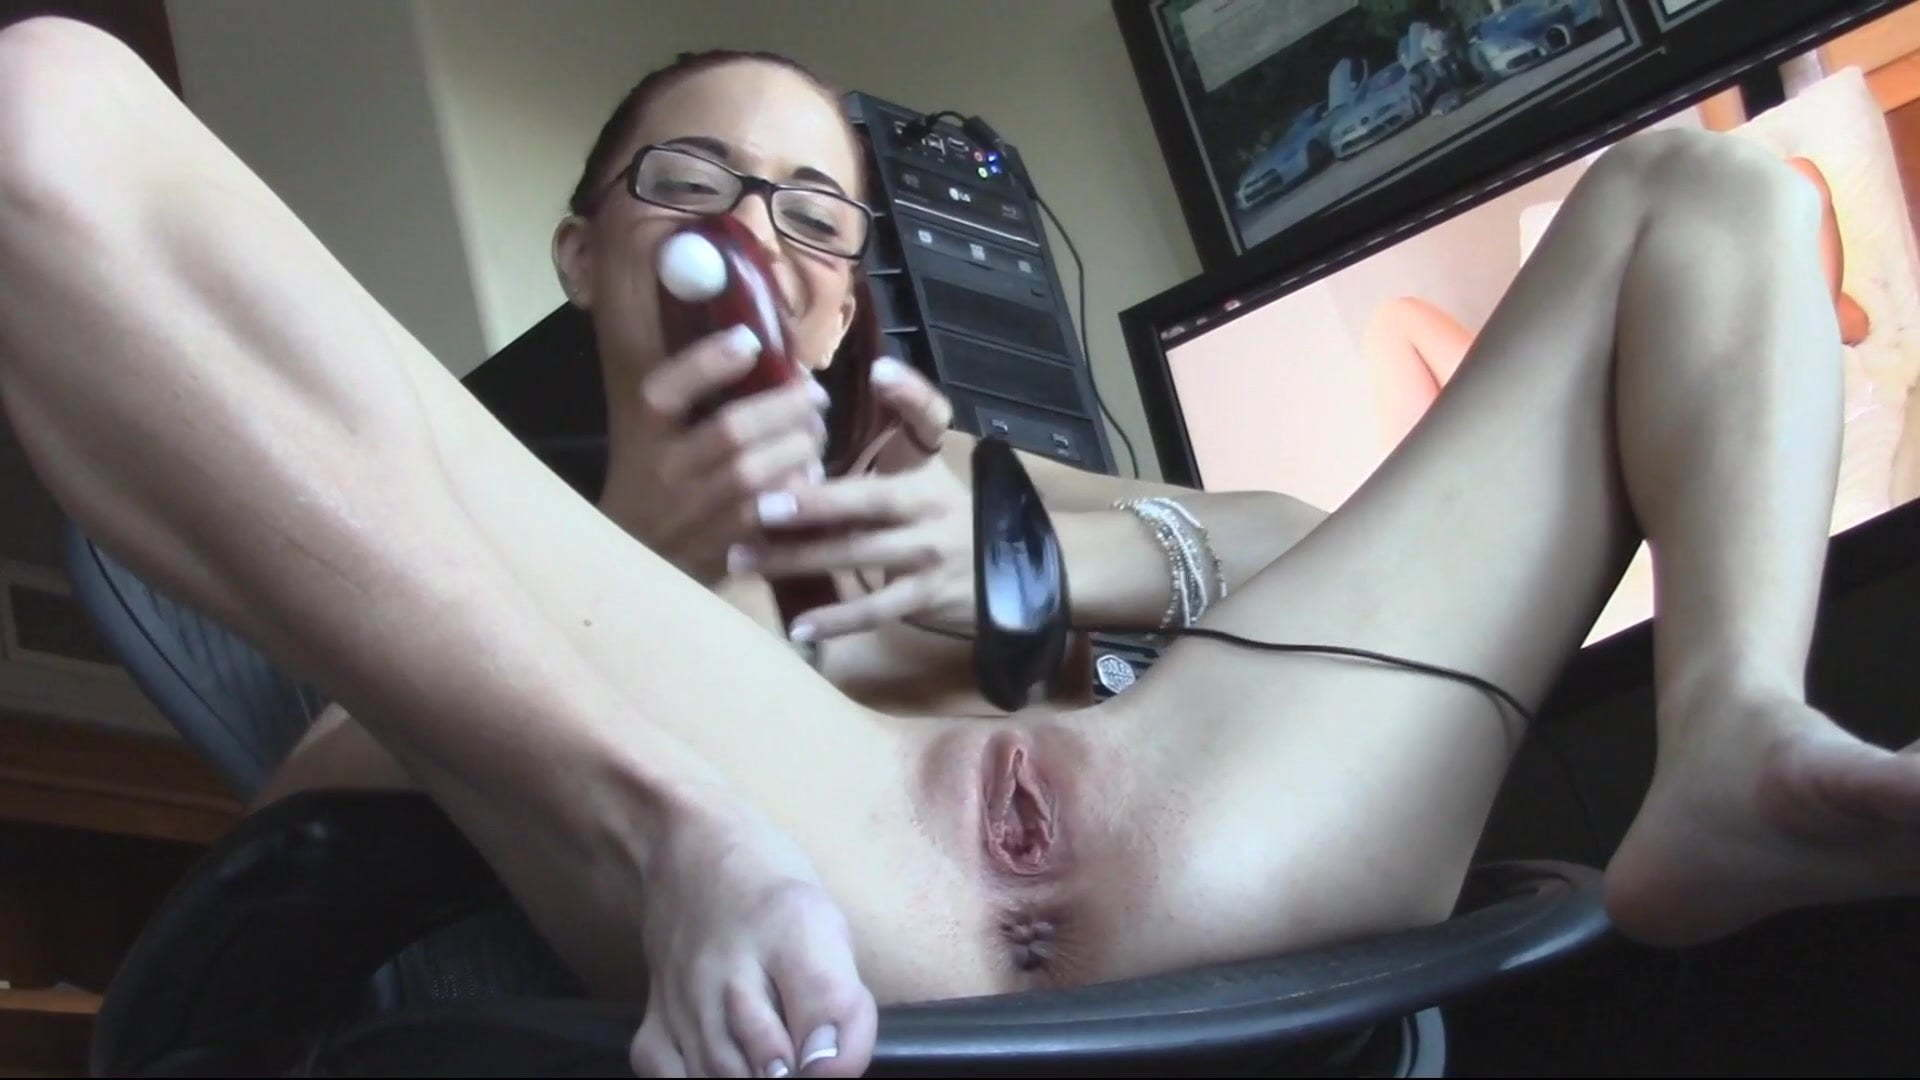 Nude gallery mouse inserted into girls pussy